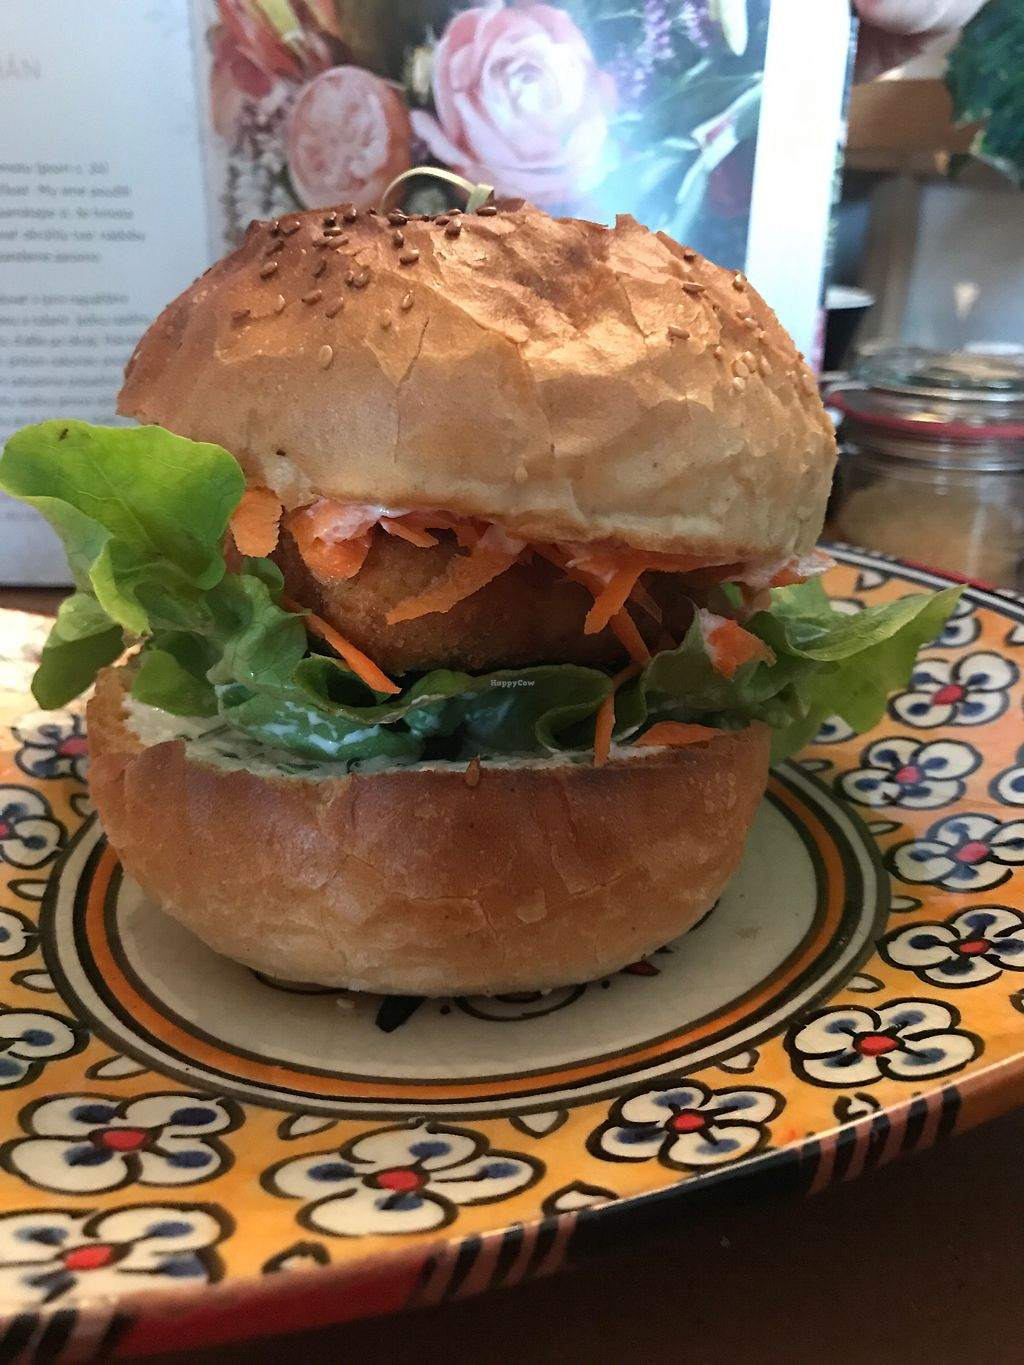 """Photo of Made with Laf  by <a href=""""/members/profile/AnaBanannaPancake"""">AnaBanannaPancake</a> <br/>Lentil burger  <br/> November 12, 2017  - <a href='/contact/abuse/image/67858/324635'>Report</a>"""